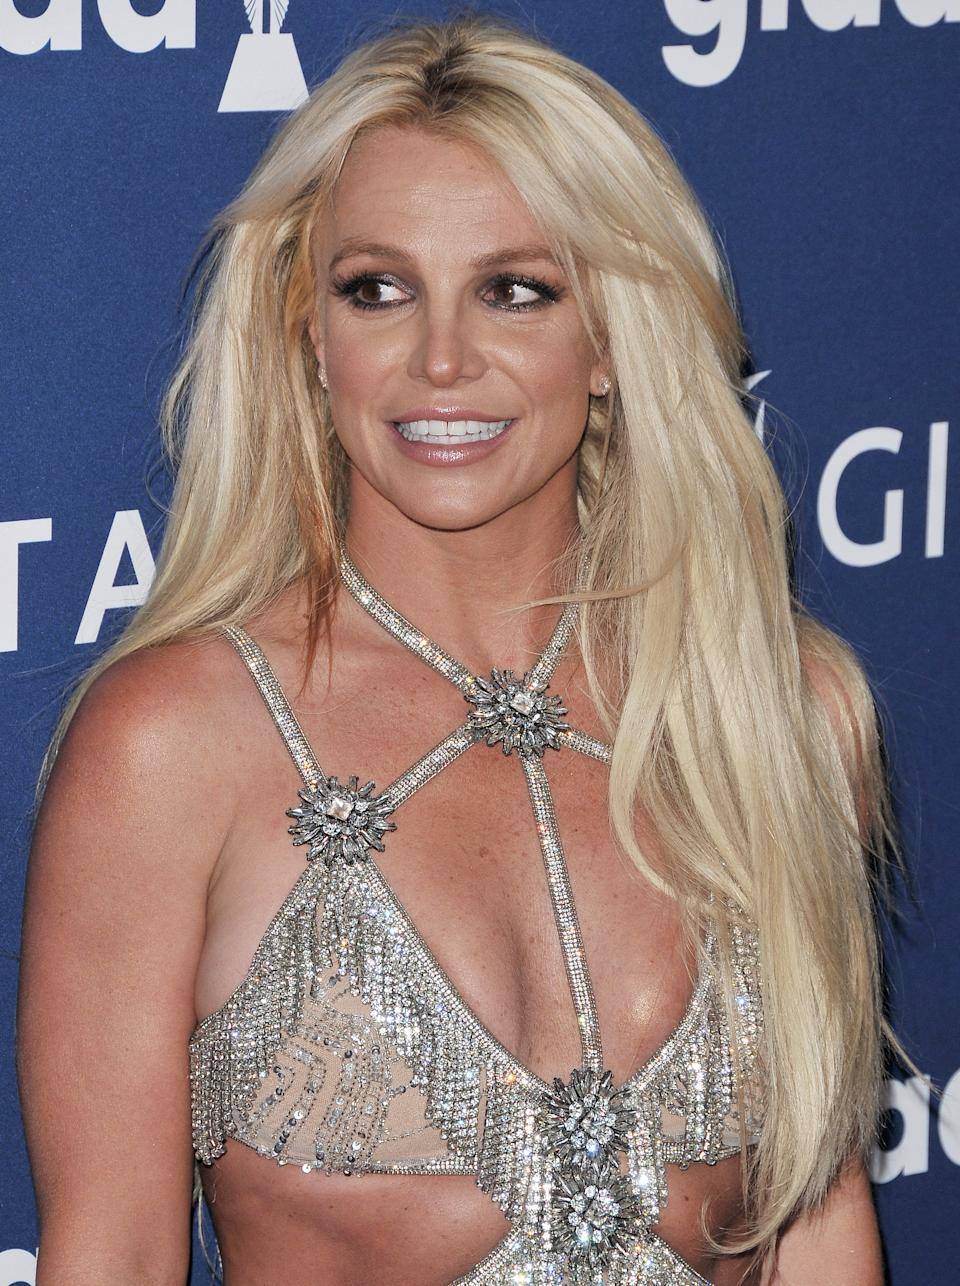 Britney Spears arrives at the 29th Annual GLAAD Media Awards held at The Beverly Hilton in Beverly Hills, CA on Thursday, April 12, 2018. (Photo By Sthanlee B. Mirador/Sipa USA)